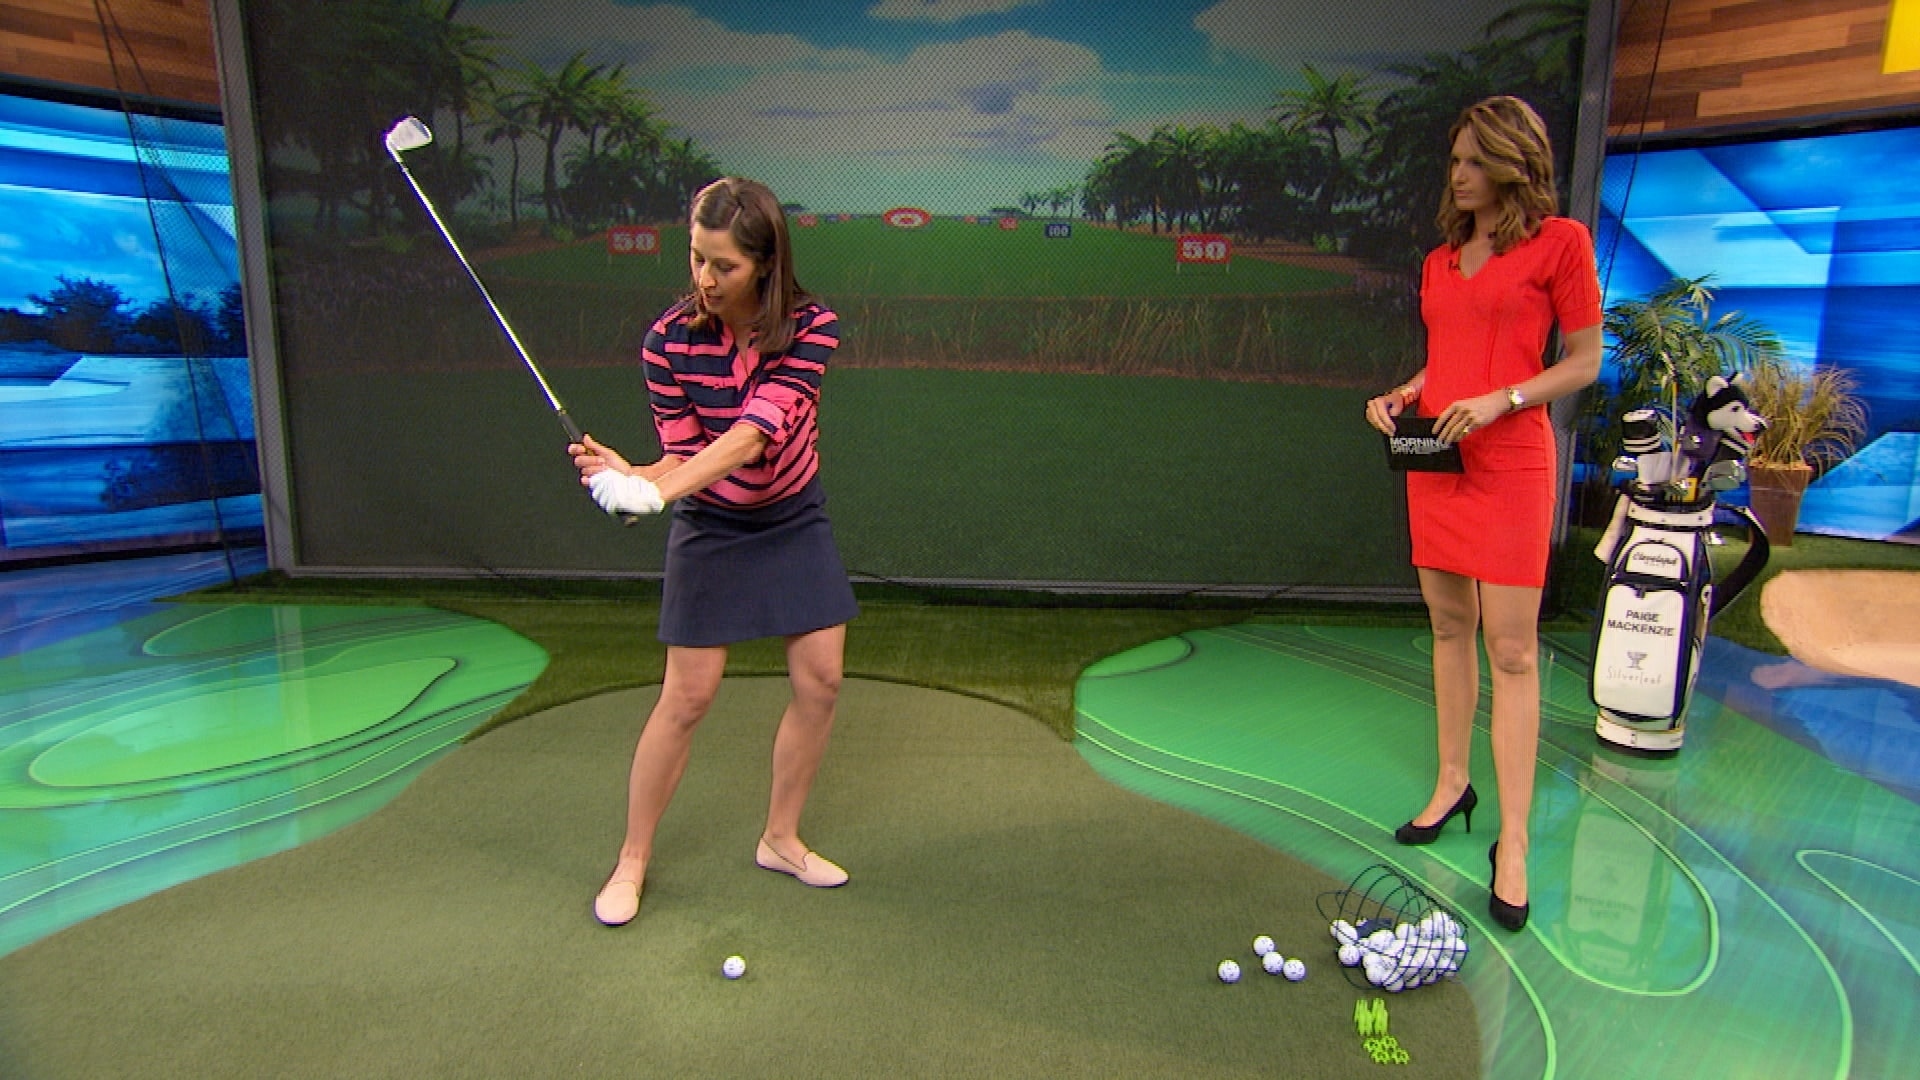 Paige Mackenzie gives swing lag drill for more distance ...